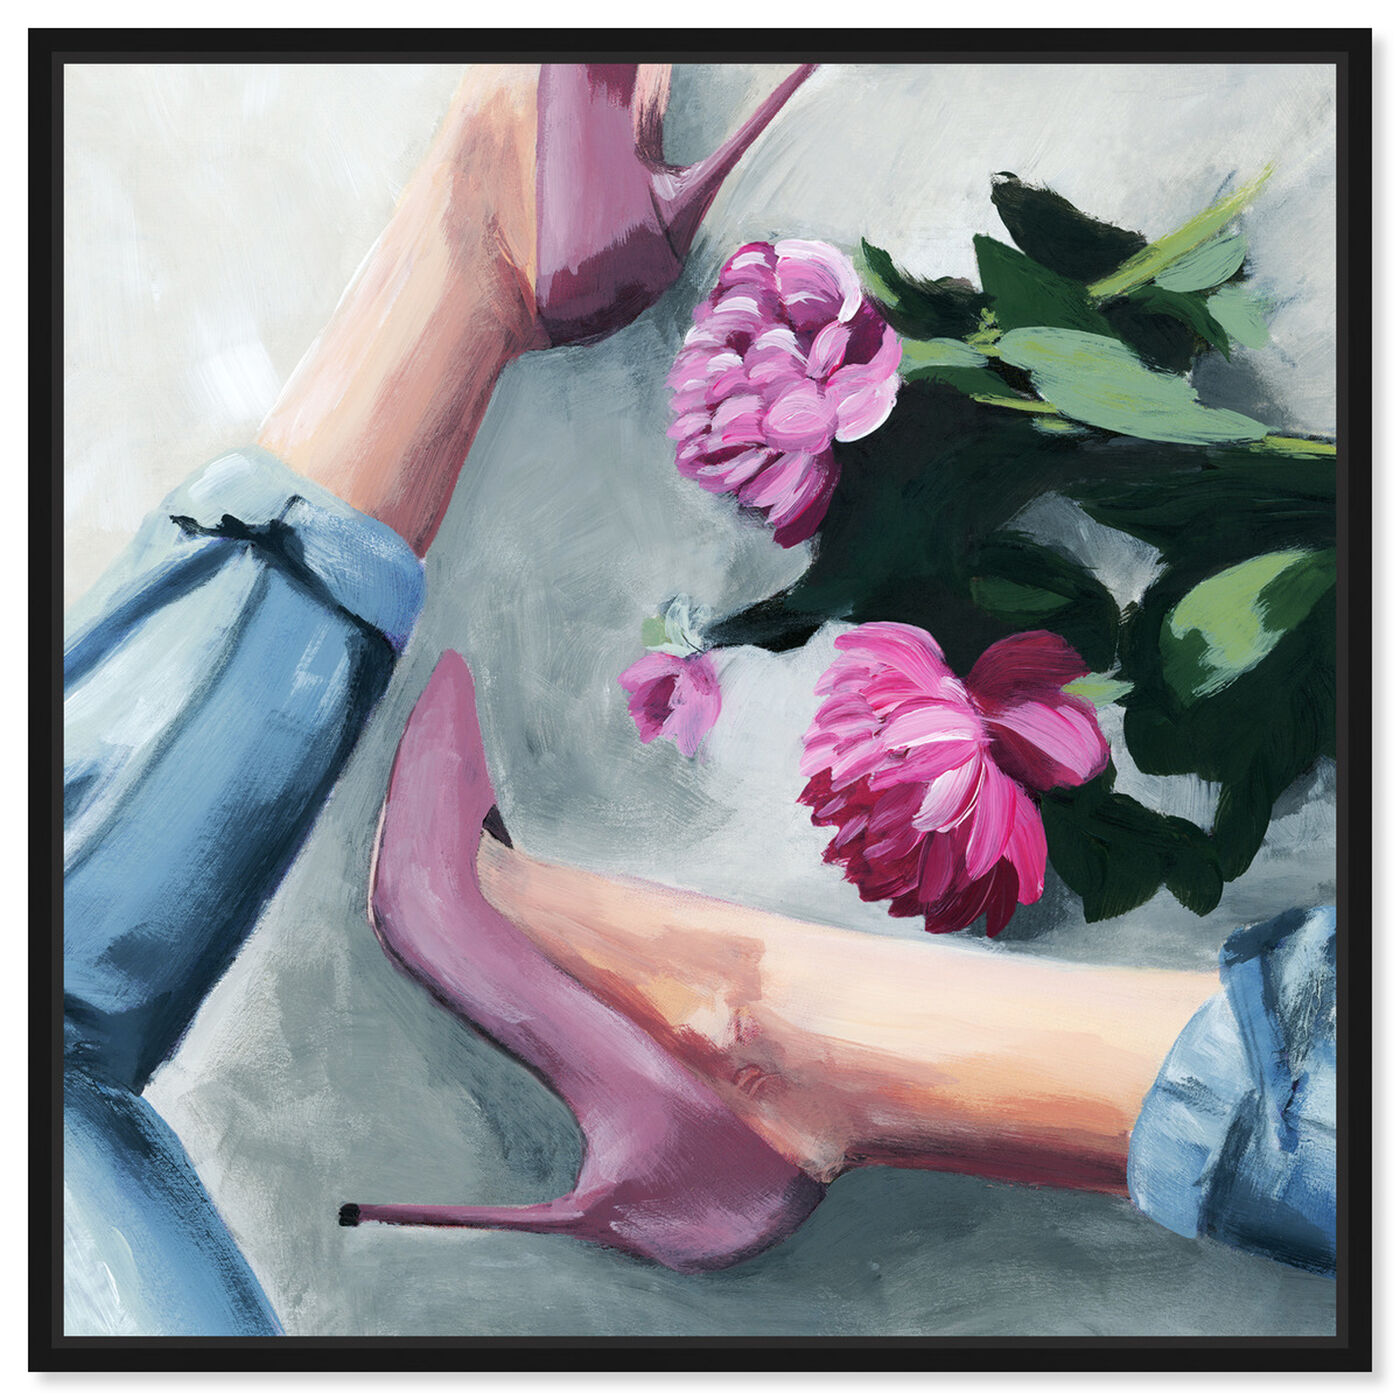 Front view of Jeans and Heels featuring fashion and glam and shoes art.